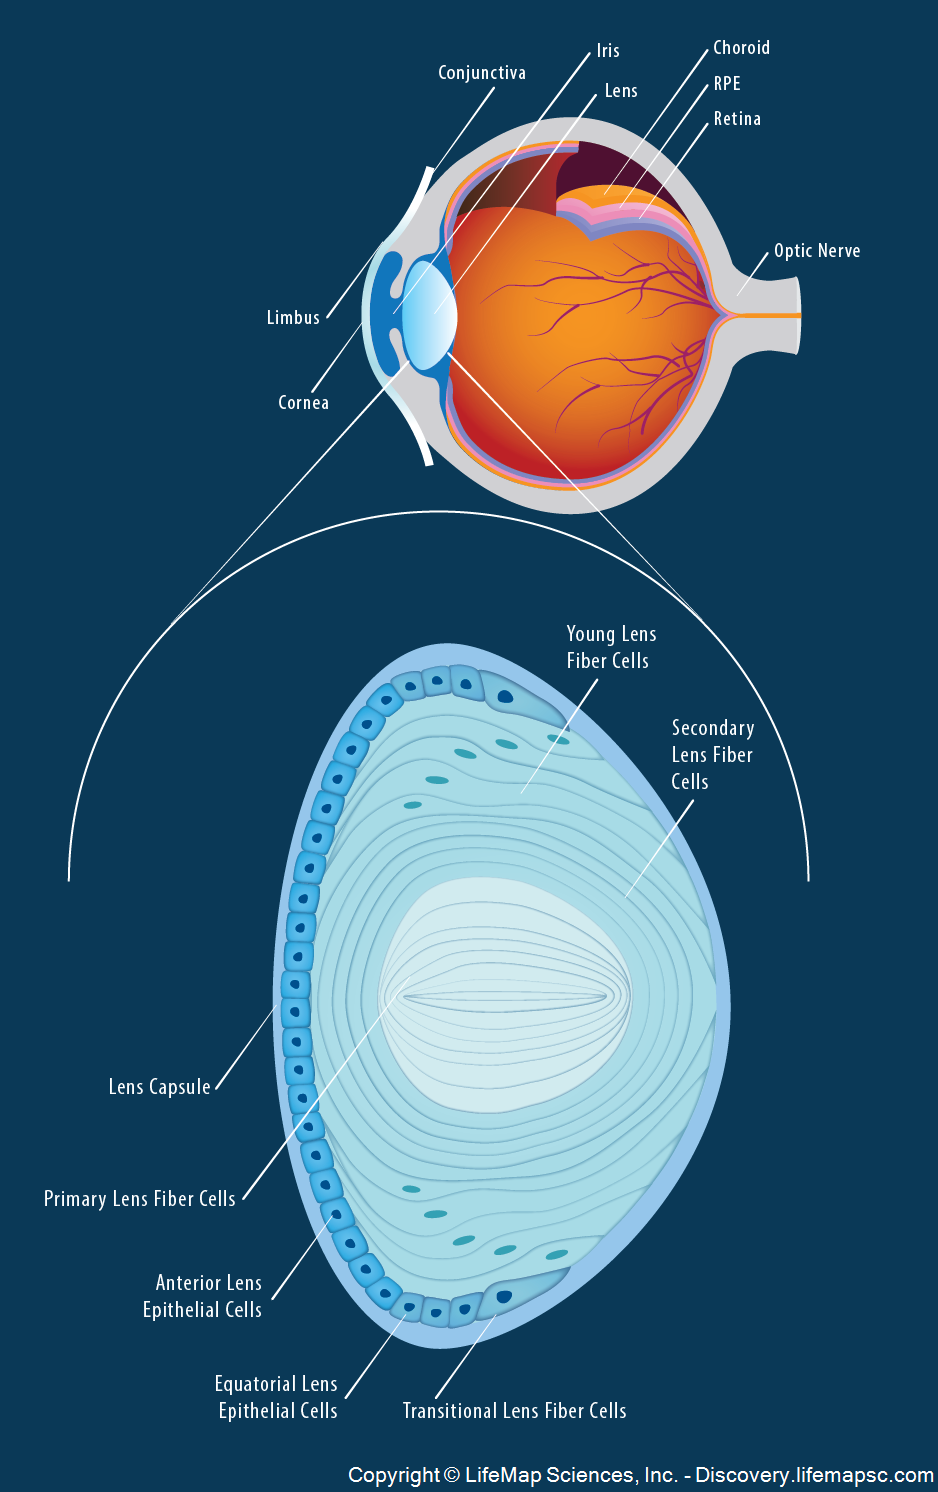 The Anatomy And Structure Of The Adult Human Lens Infographic